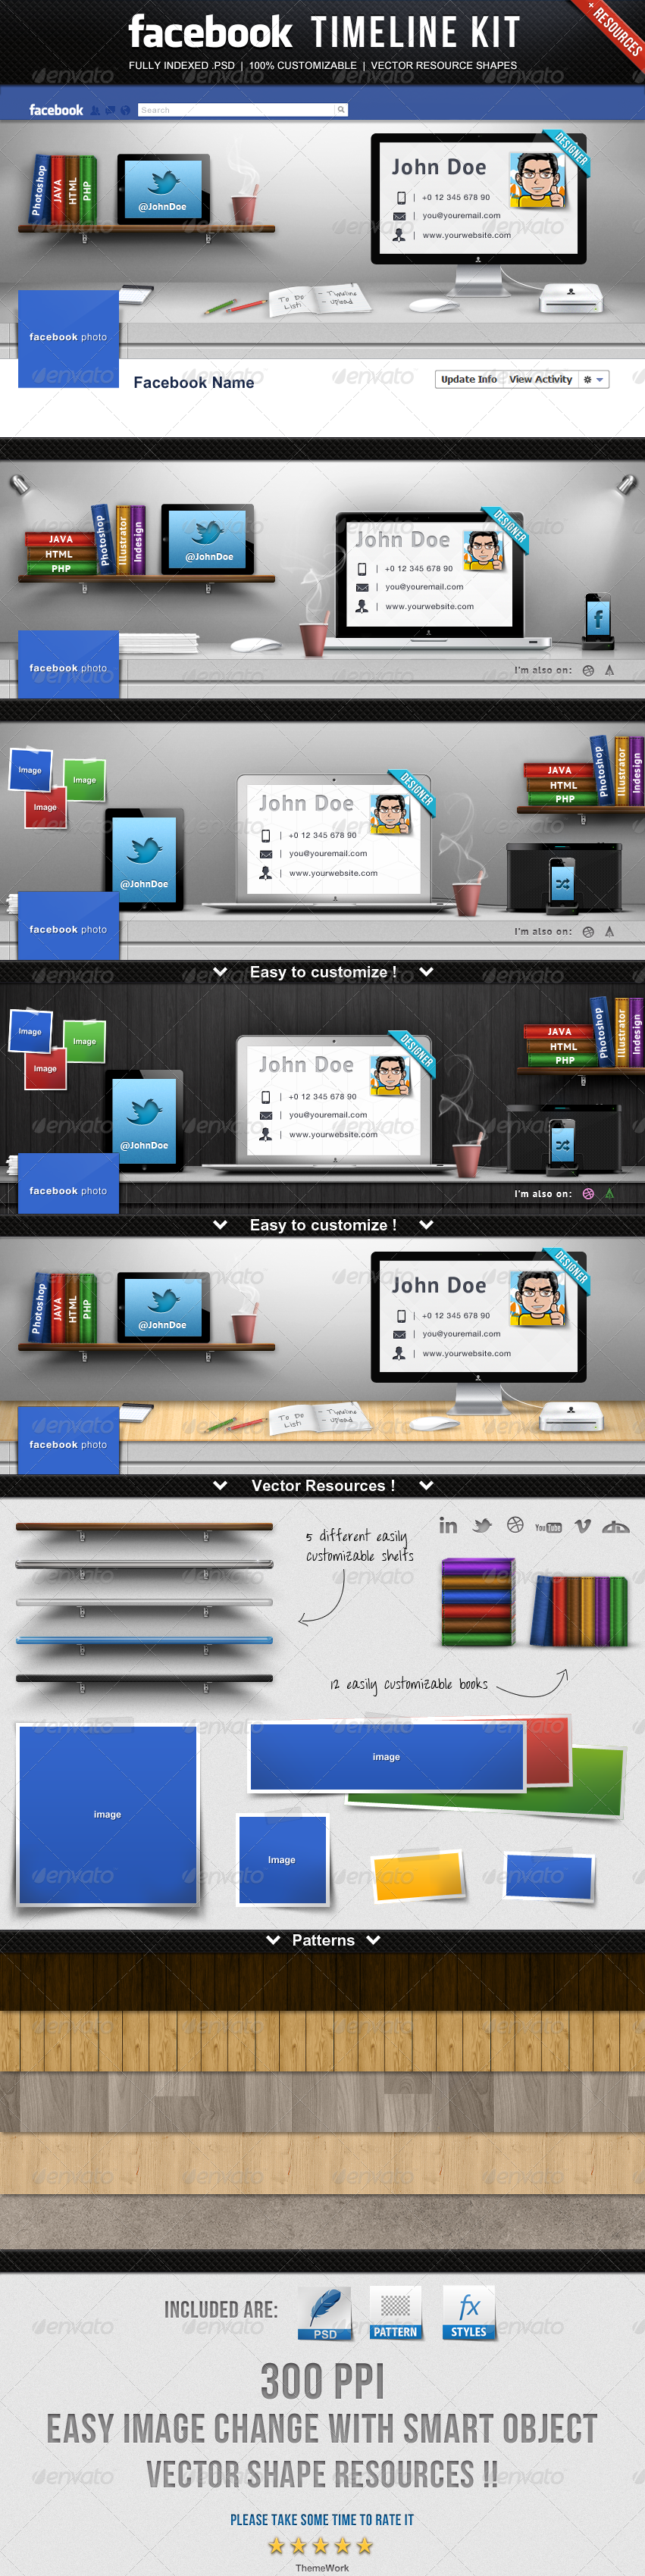 Facebook Timeline Kit | Facebook timeline, Timeline covers and ...